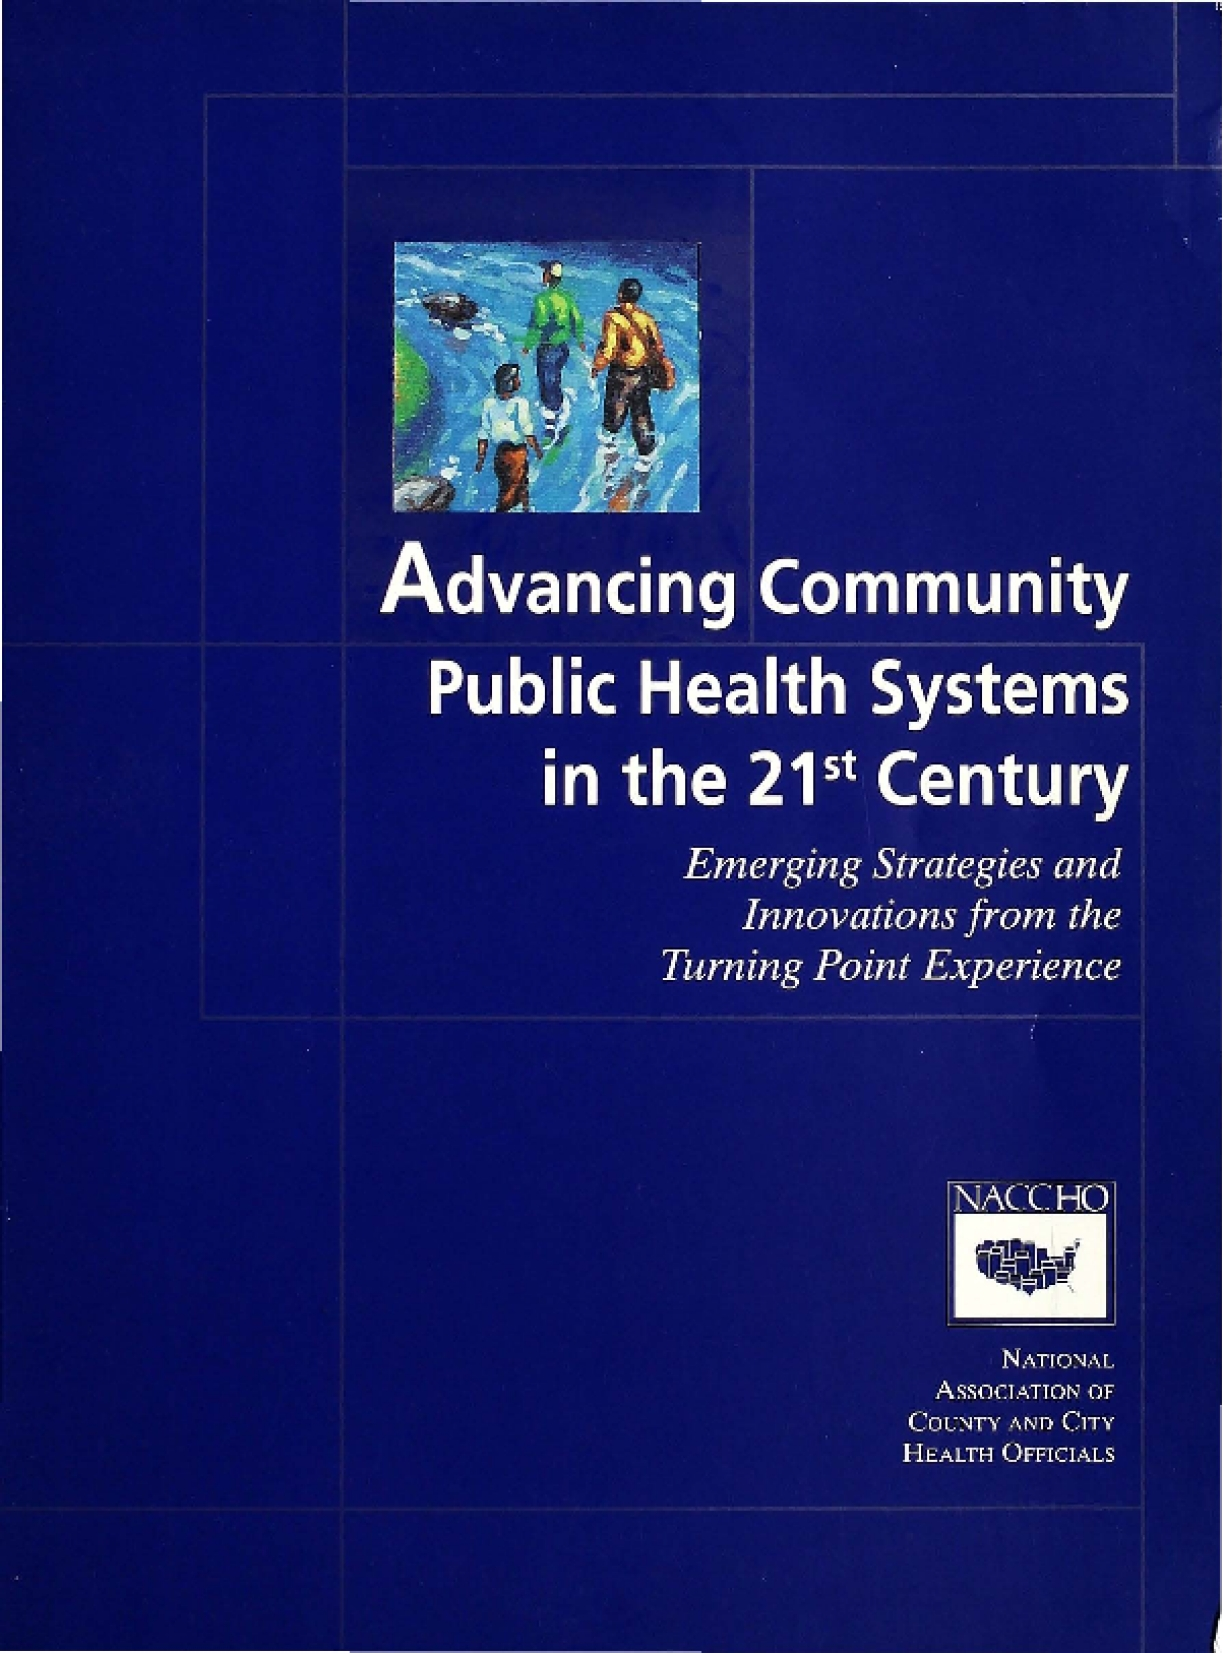 Advancing Community Public Health Systems in the 21st Century: Emerging Strategies and Innovations from the Turning Point Experience